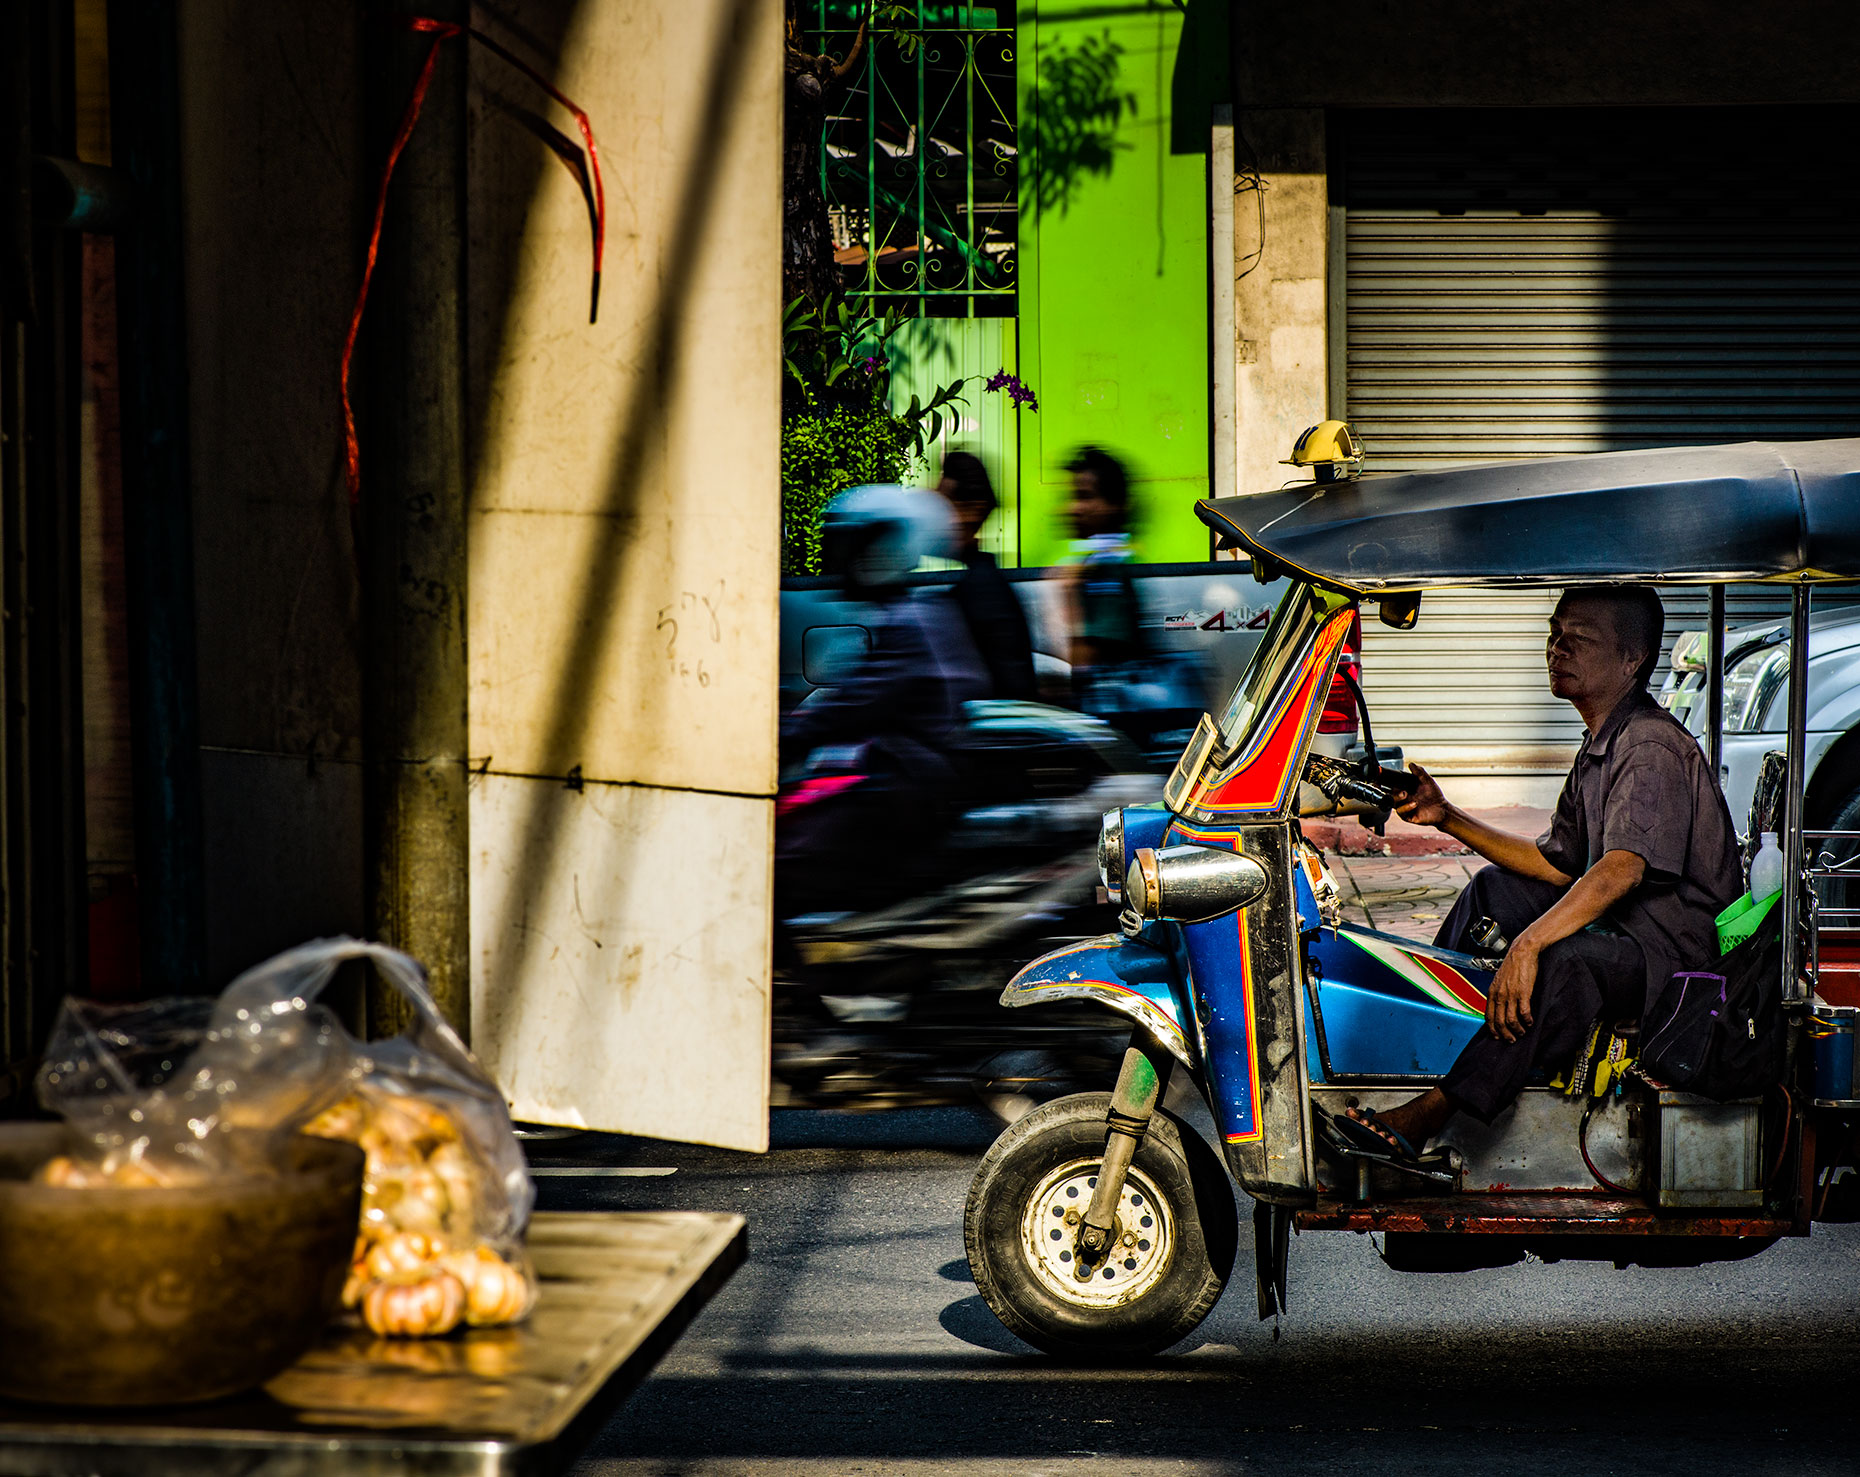 bangkok-thailand-travel-photography-print-60